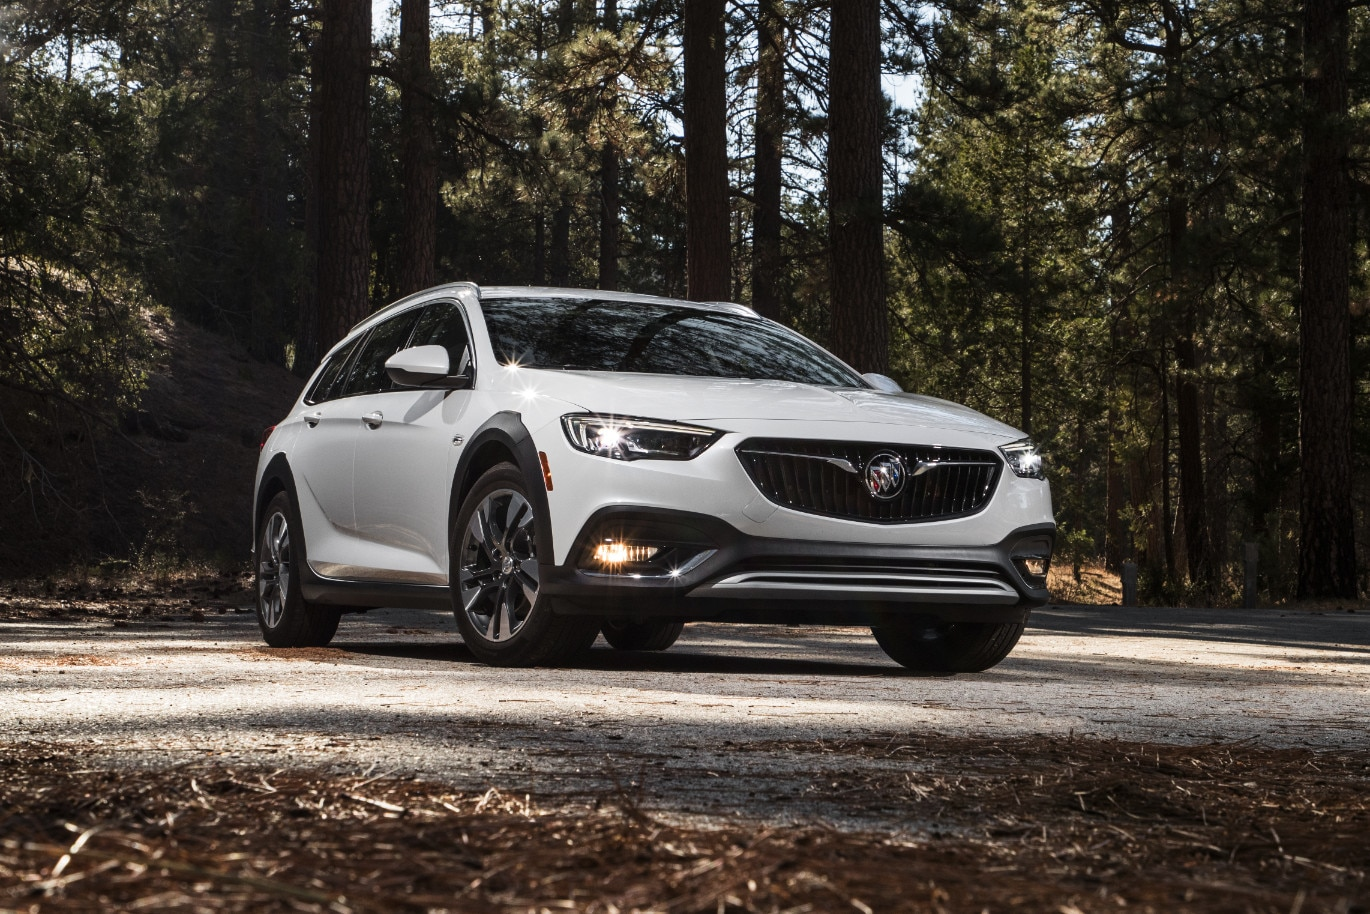 2018 Buick Regal TourX17